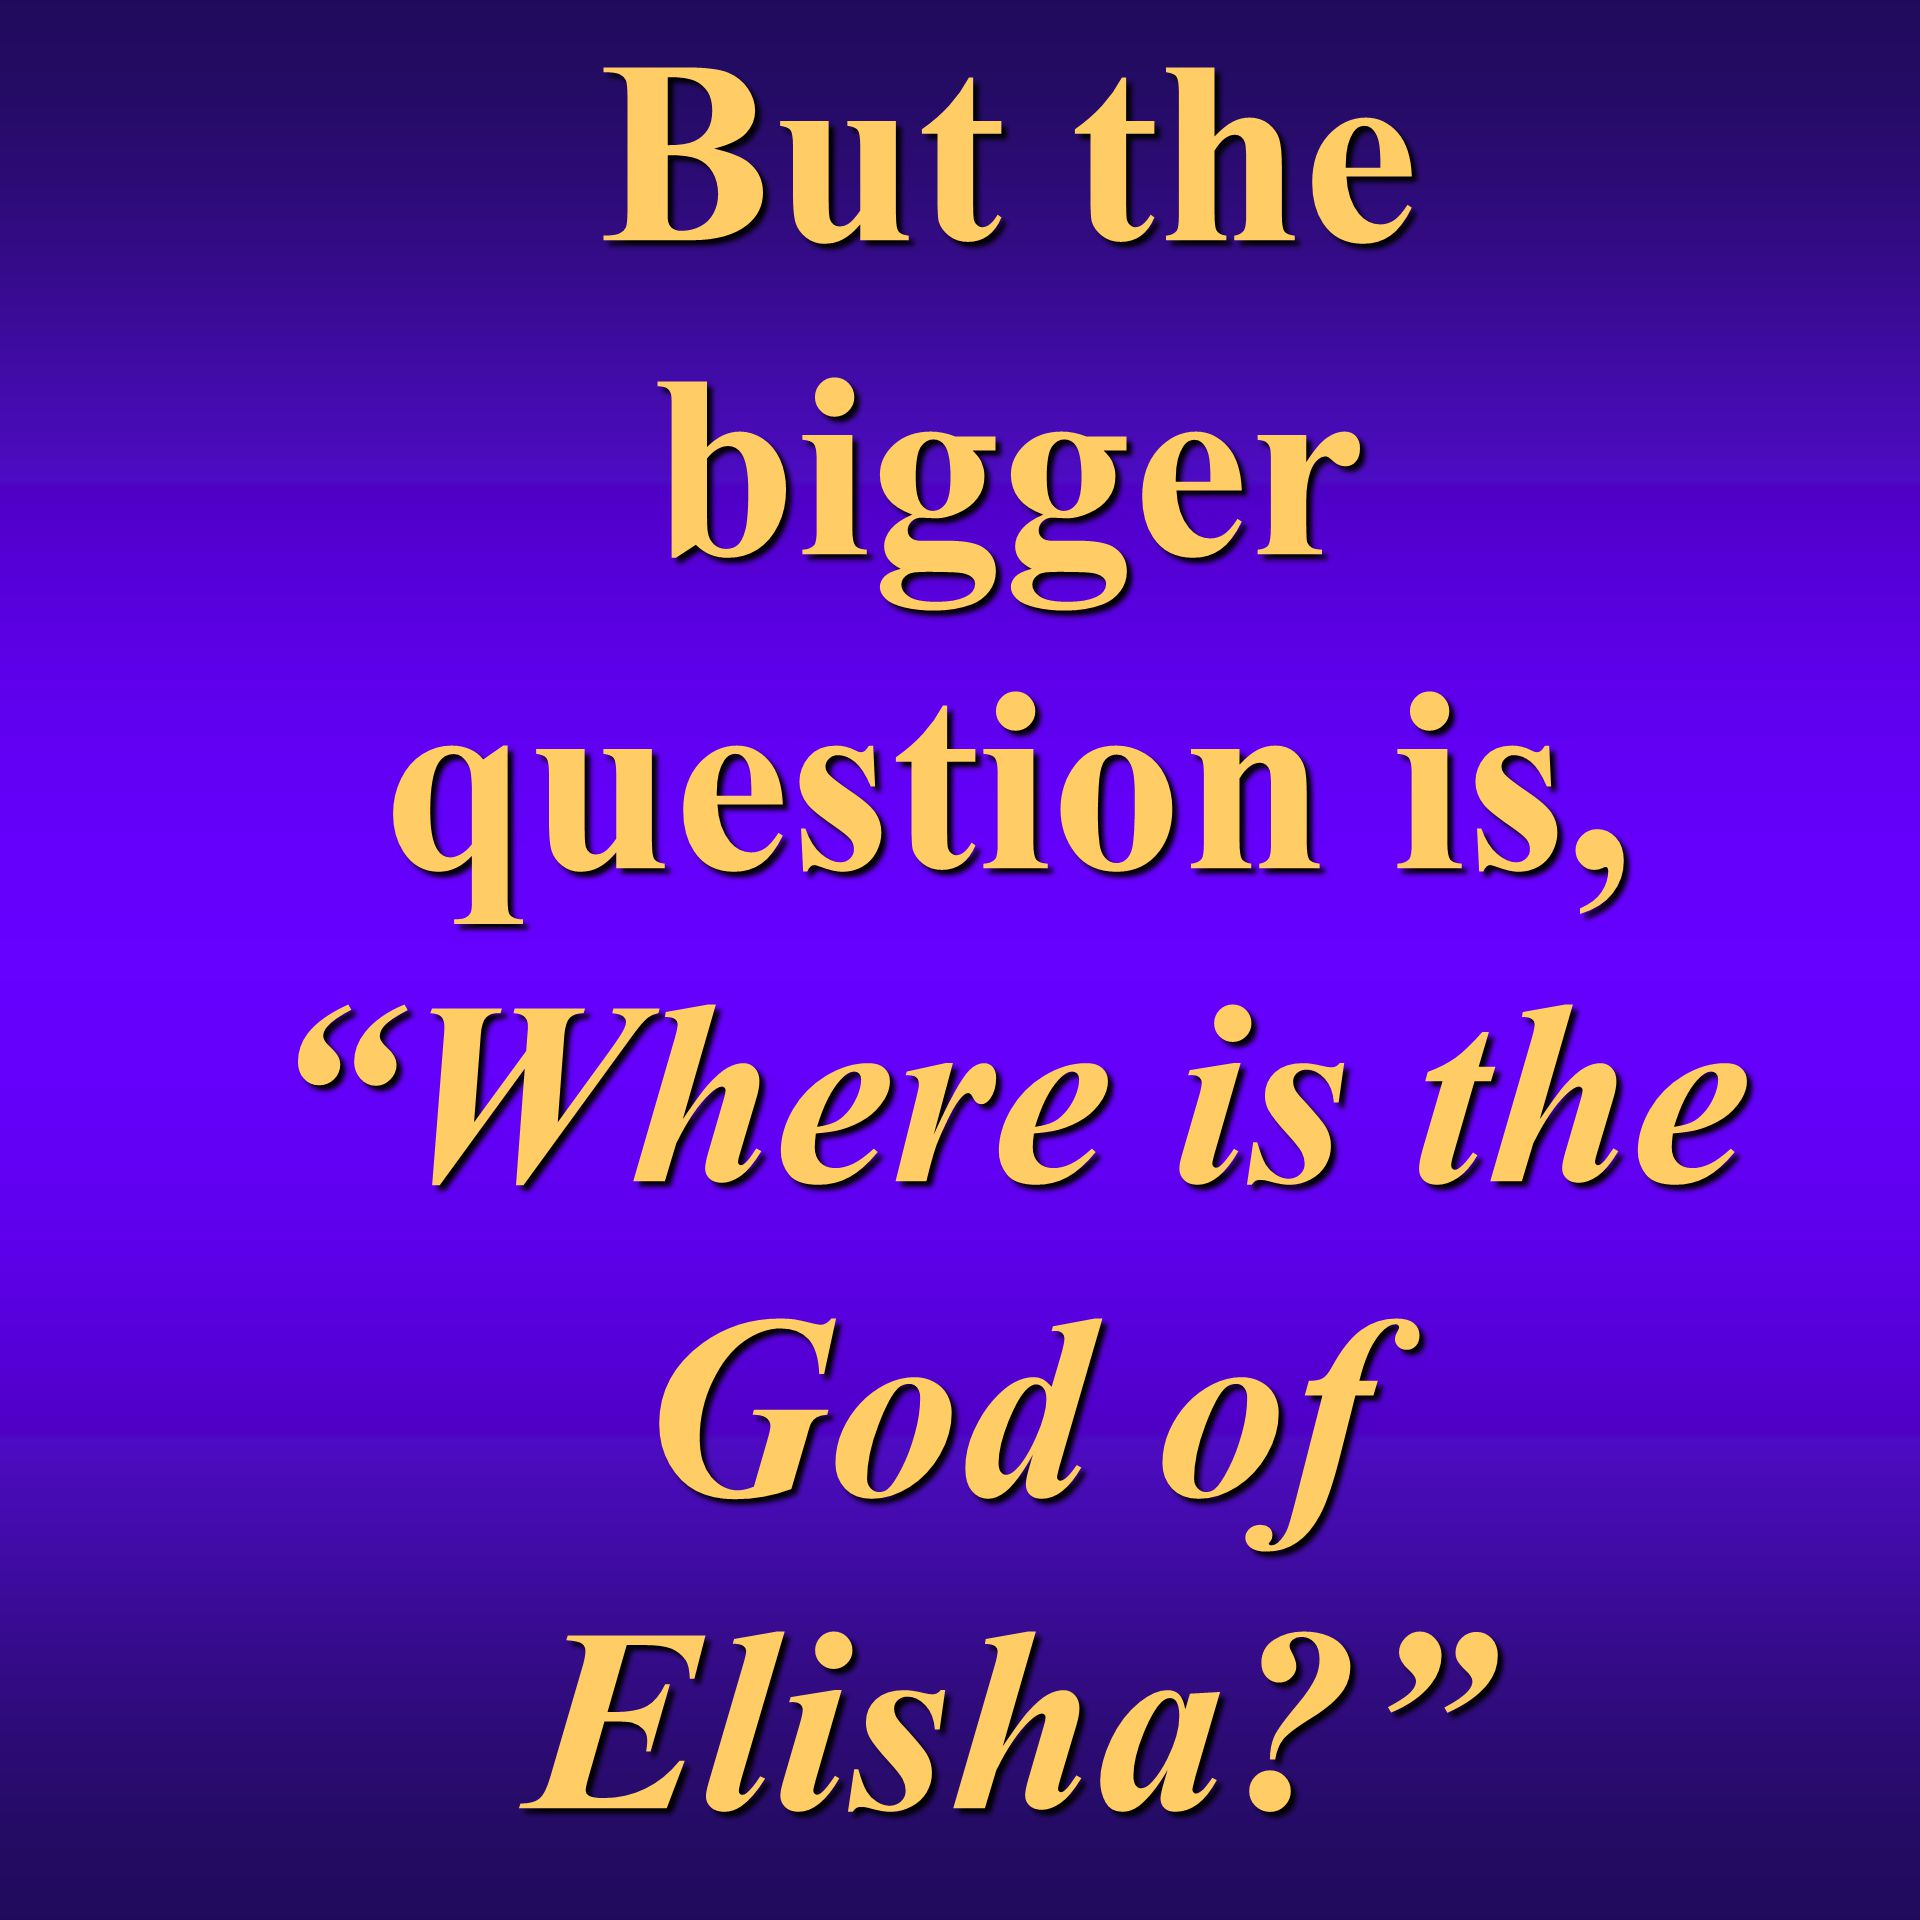 But the bigger question is, Where is the God of Elisha